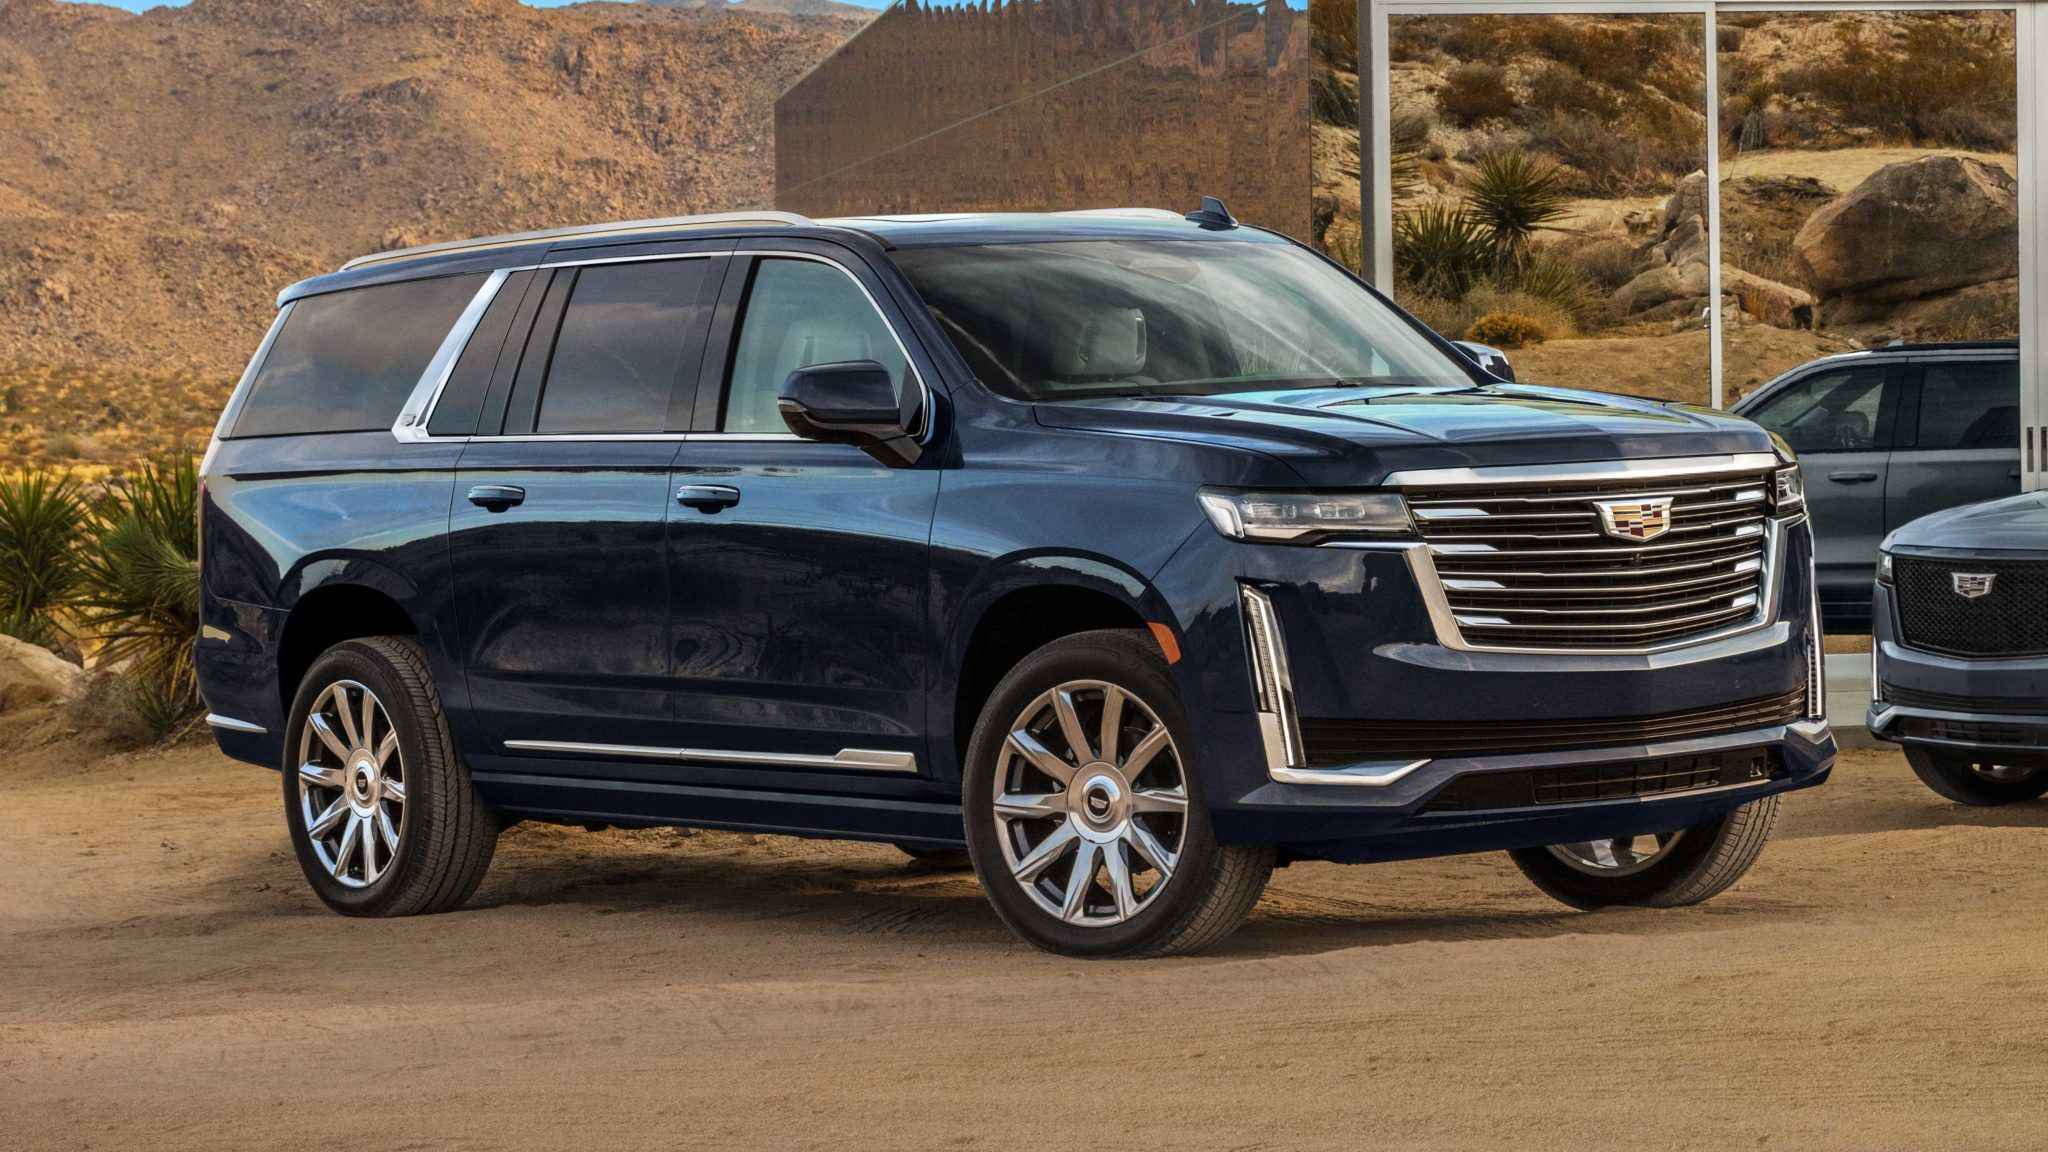 Pin On Cars Suvs Trucks Motorcycles Direct Buy Sell